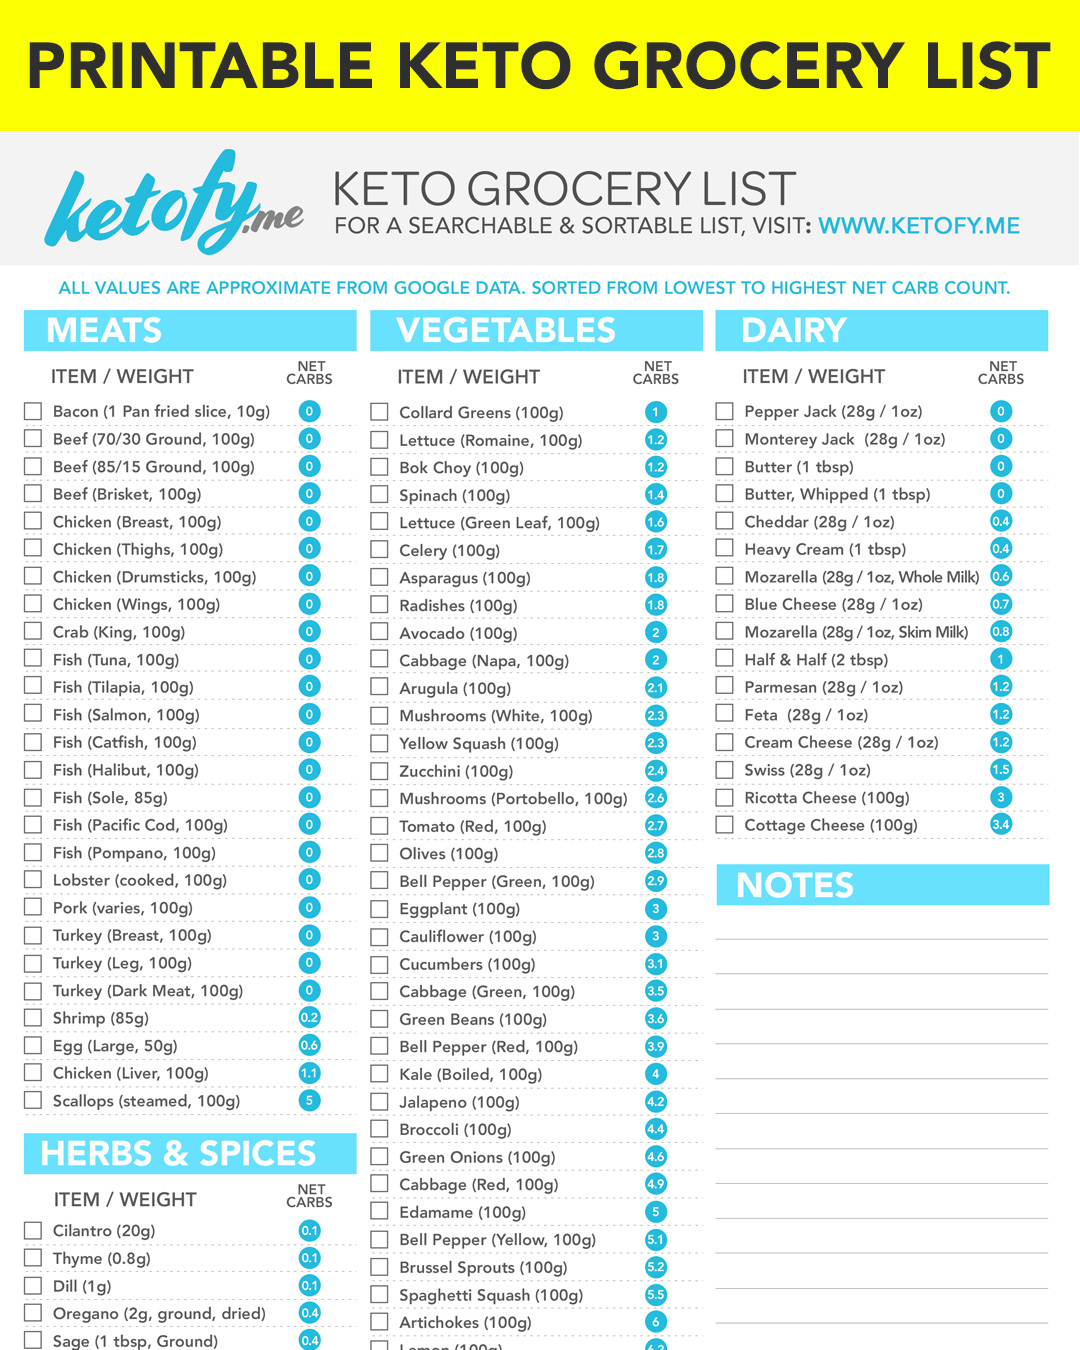 Keto ~ Fy Me | Cut Carbs, Not Flavor! • Ultimate Ketogenic pertaining to 100 Days Of Keto Calendar